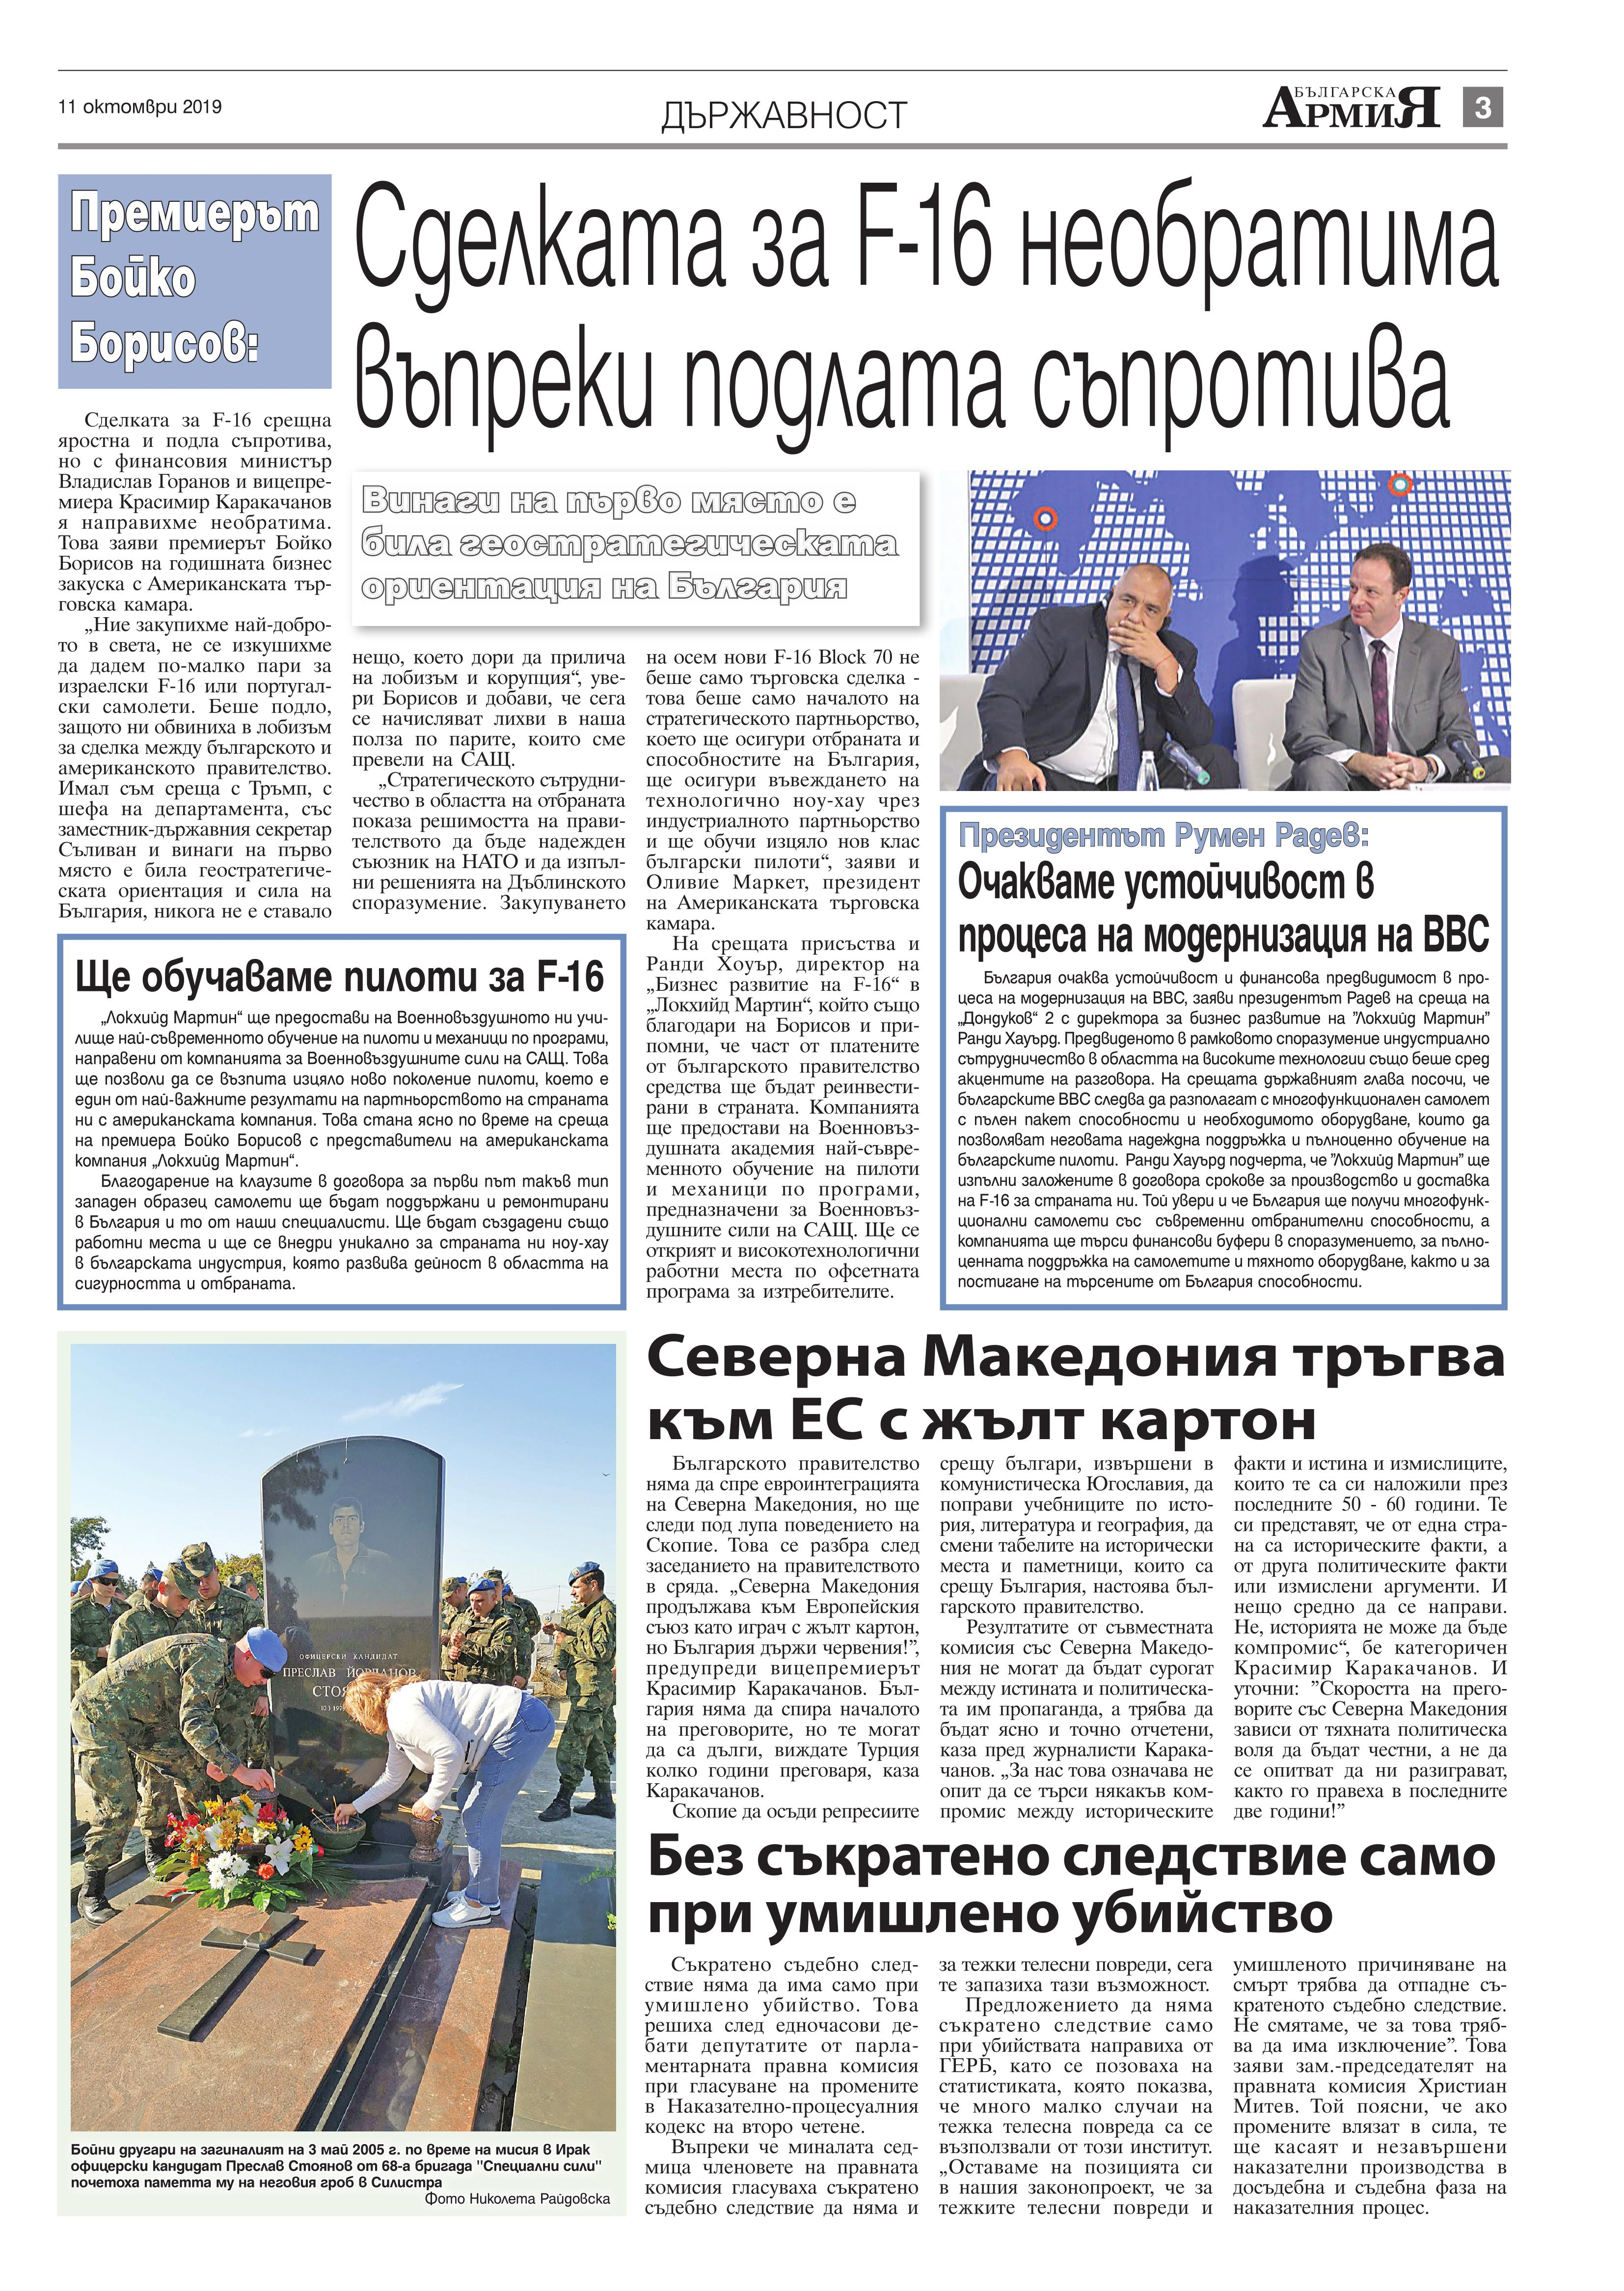 https://armymedia.bg/wp-content/uploads/2015/06/03.page1_-108.jpg